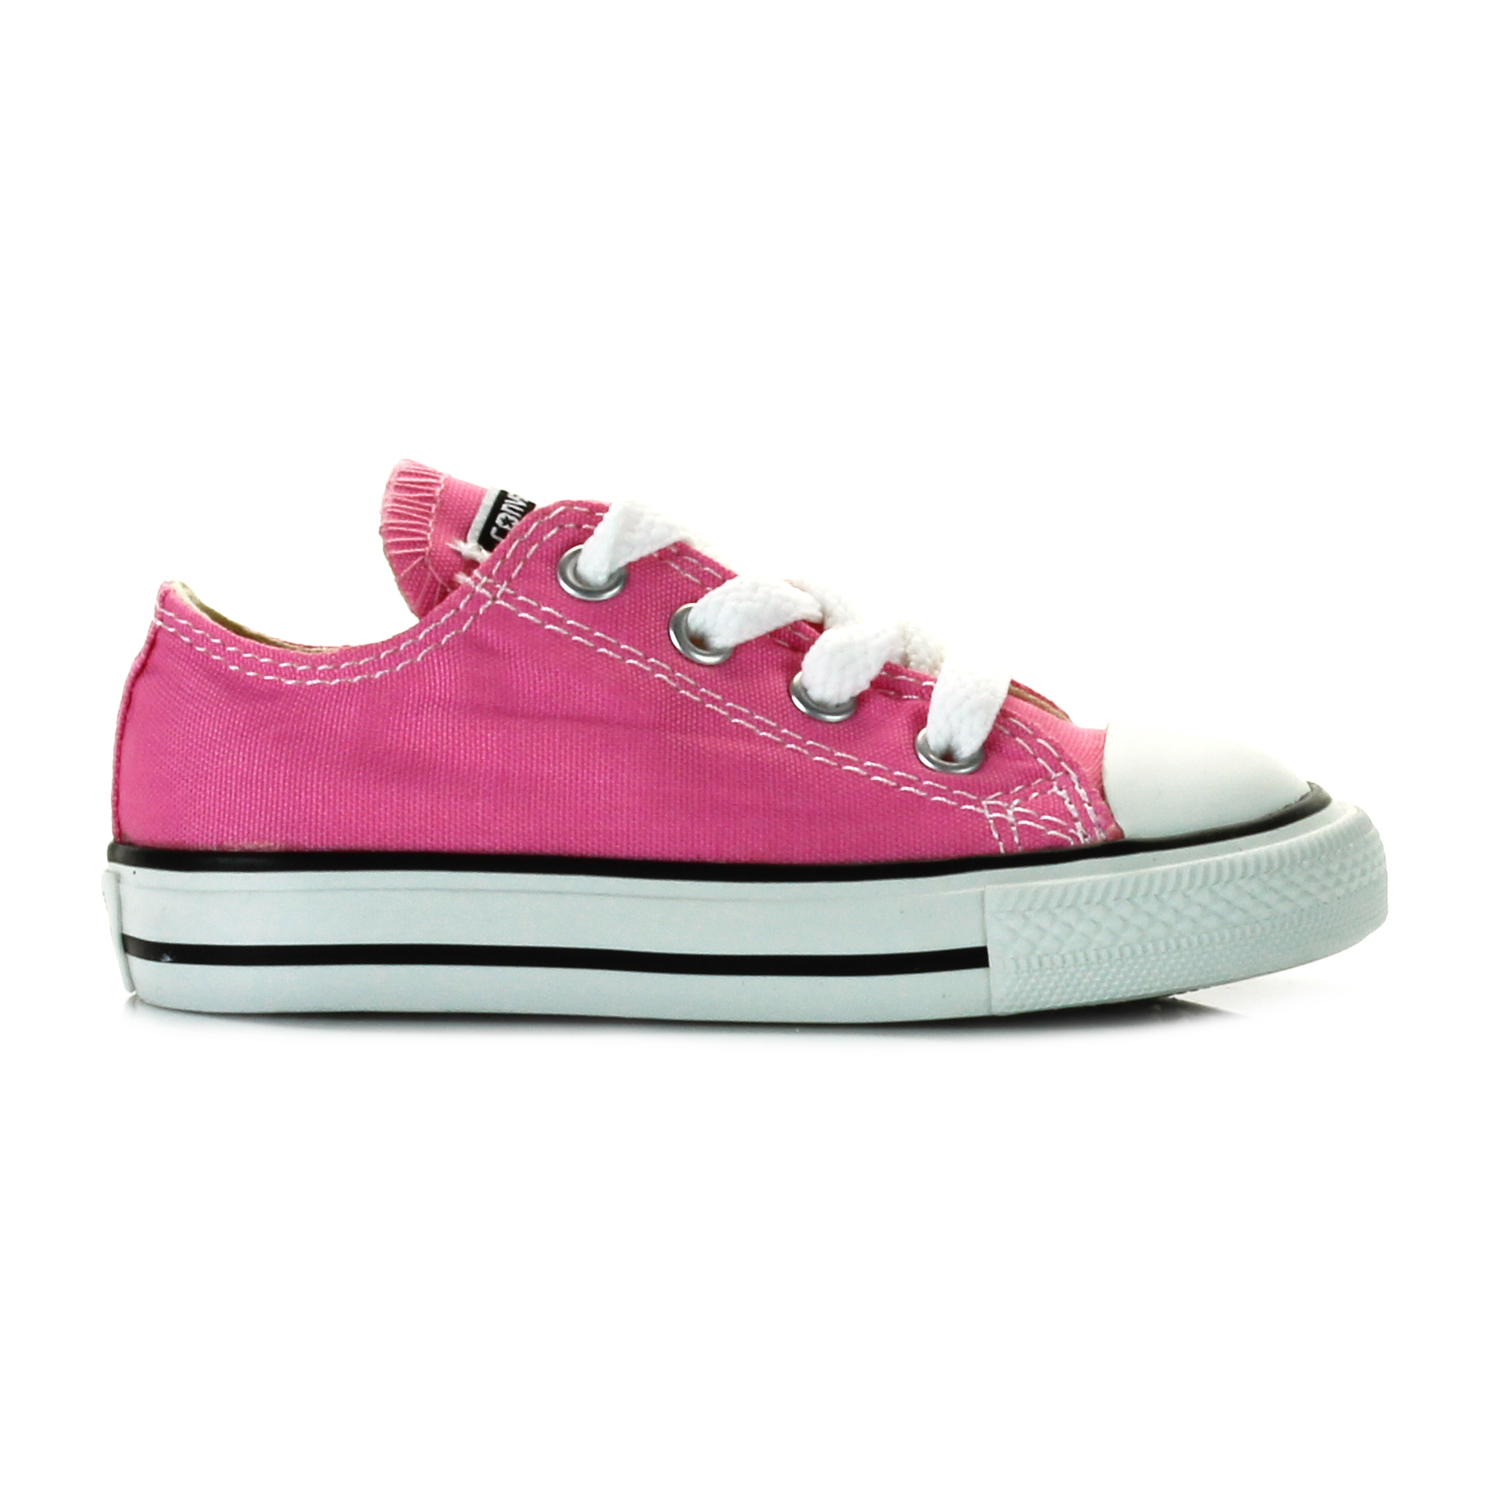 Converse All Star Chuck Taylor I ( 7J238C ) παπούτσια    παιδί    βρεφικά  size 17 27